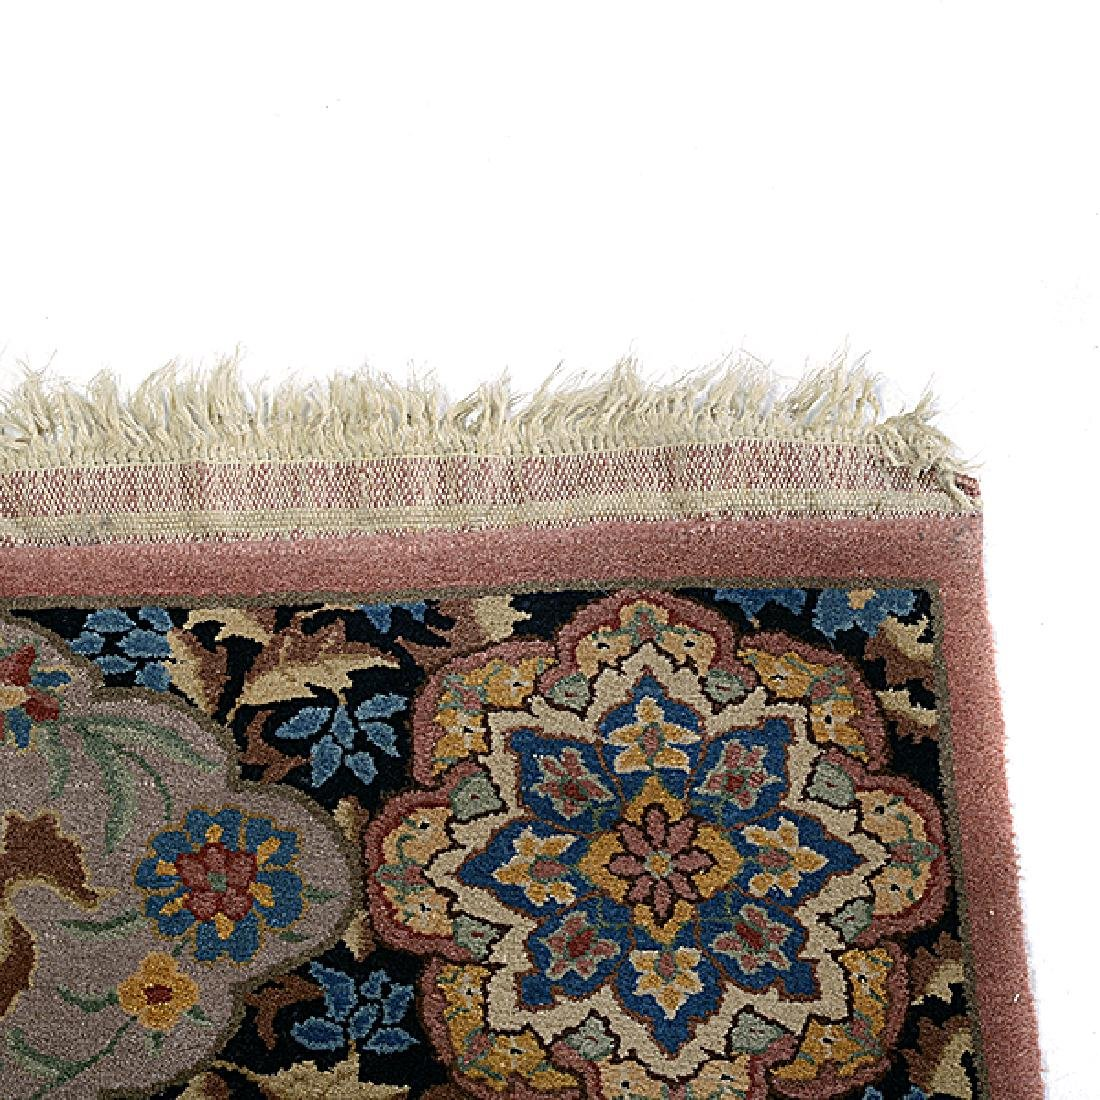 Islamic Figural Carpet Tapestry with Calligraphy: 5 - 5